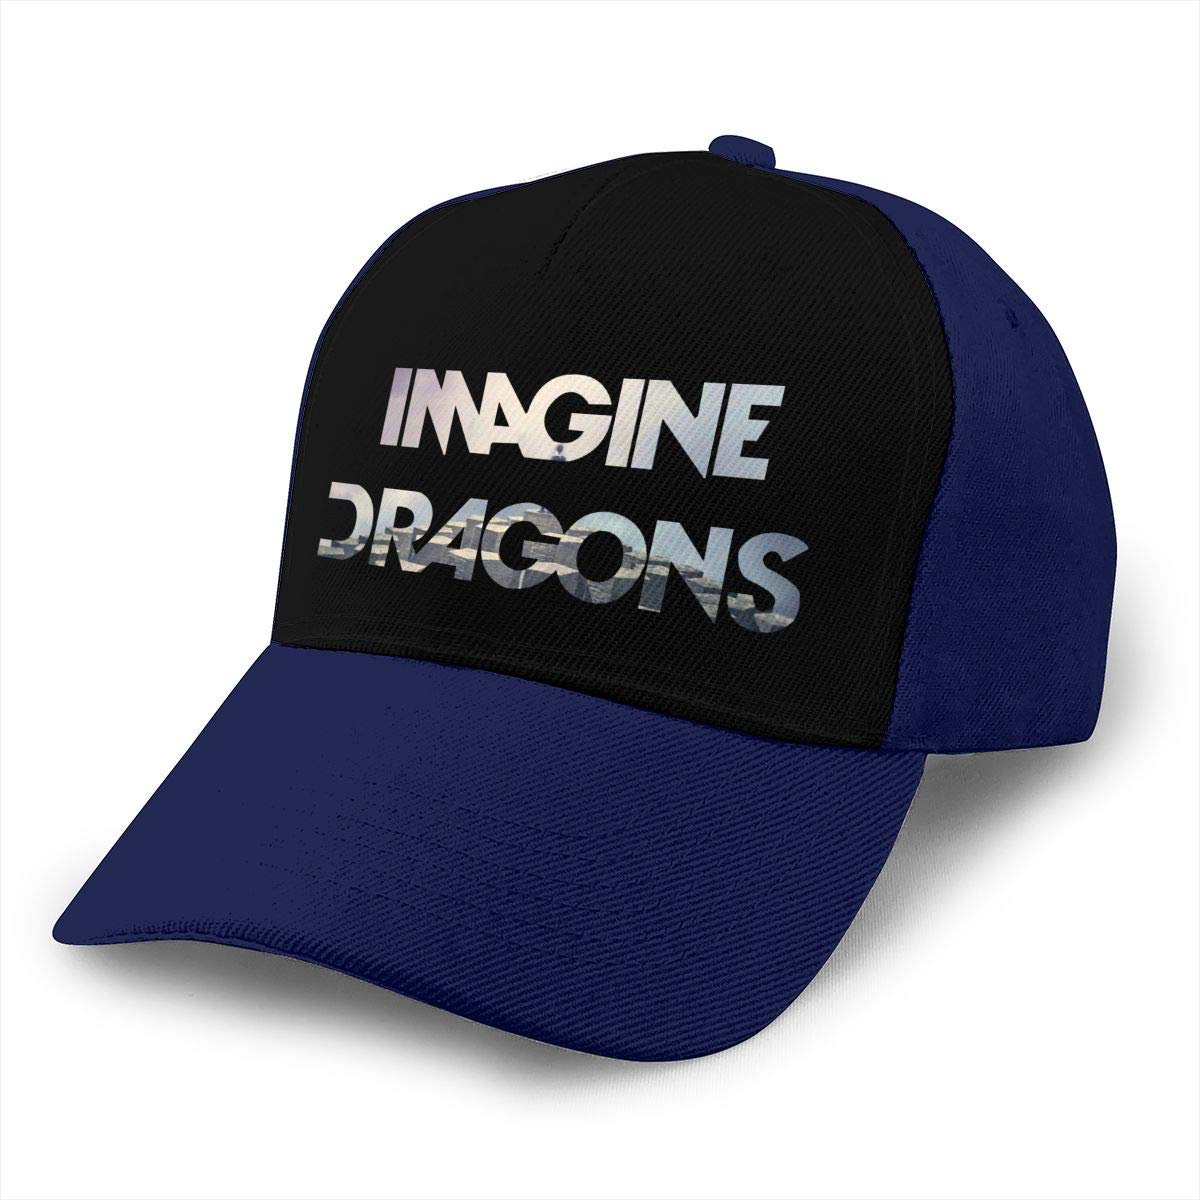 Adjustable Women Men Imagine The Dragons Print Baseball Cap Flat Brim Cap Hats Hip Hop Snapback Sun Hat Boys Girls Navy by Apolonia